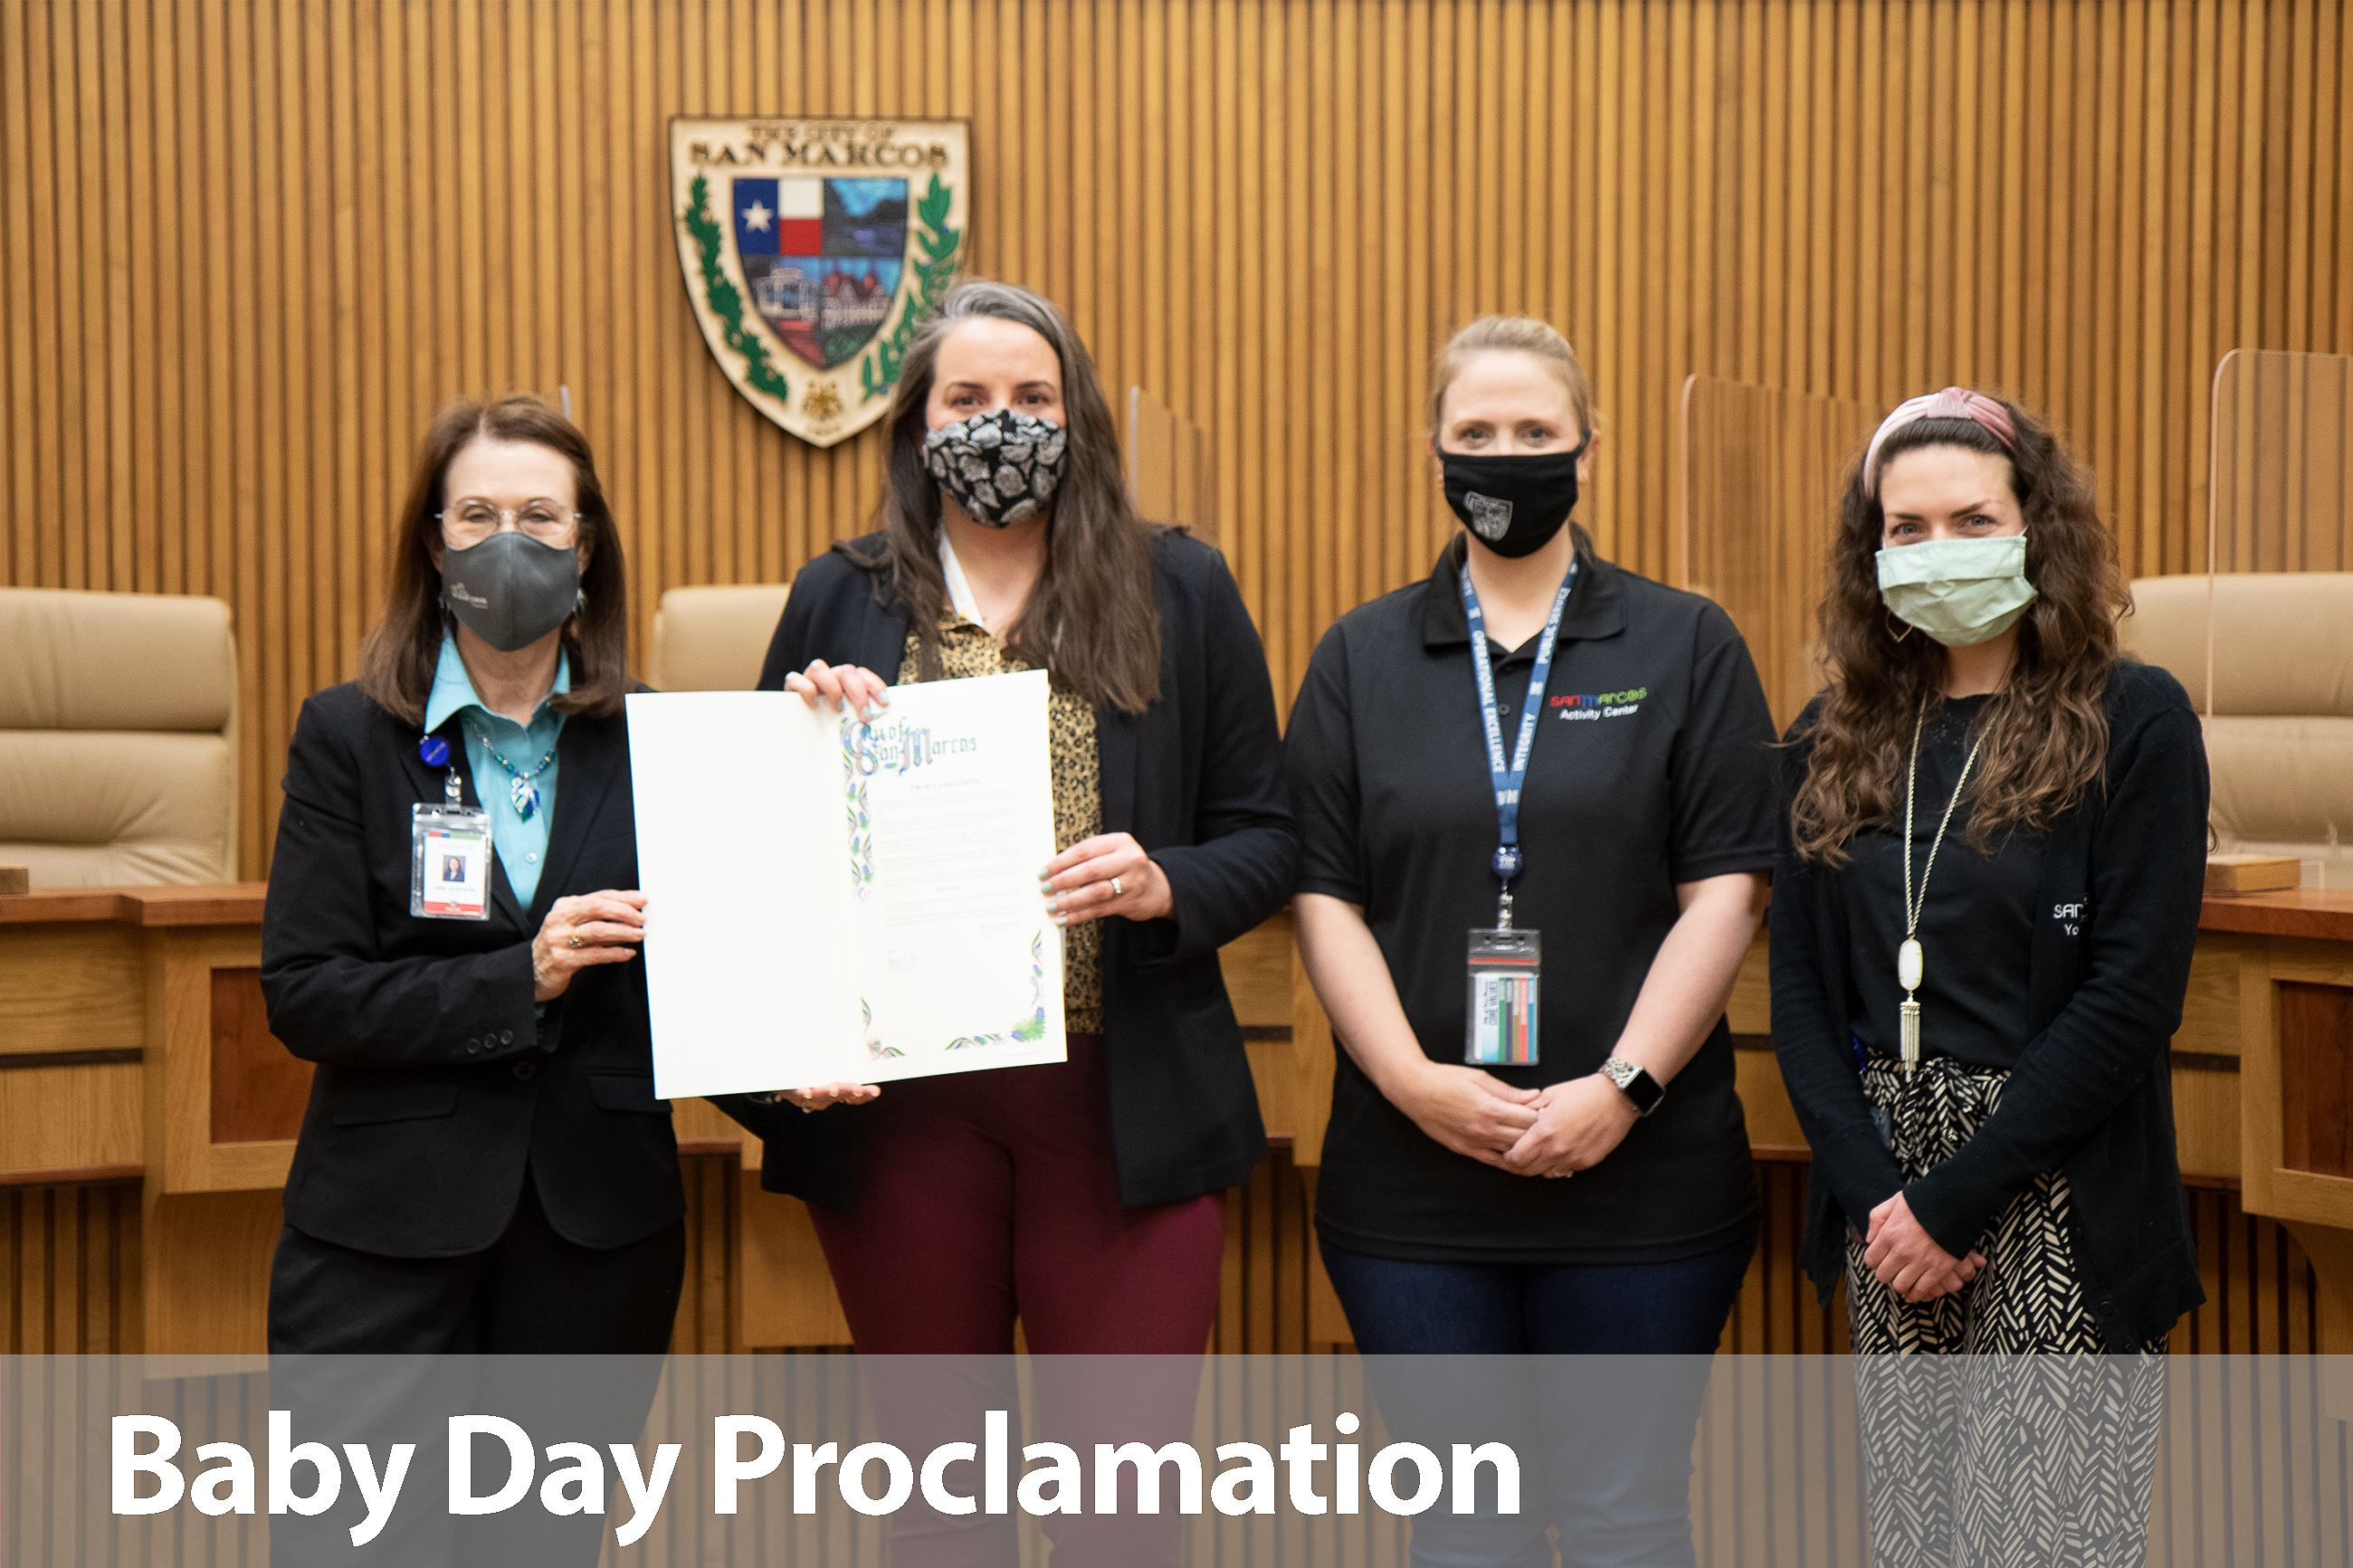 Baby Day Proclamation photo